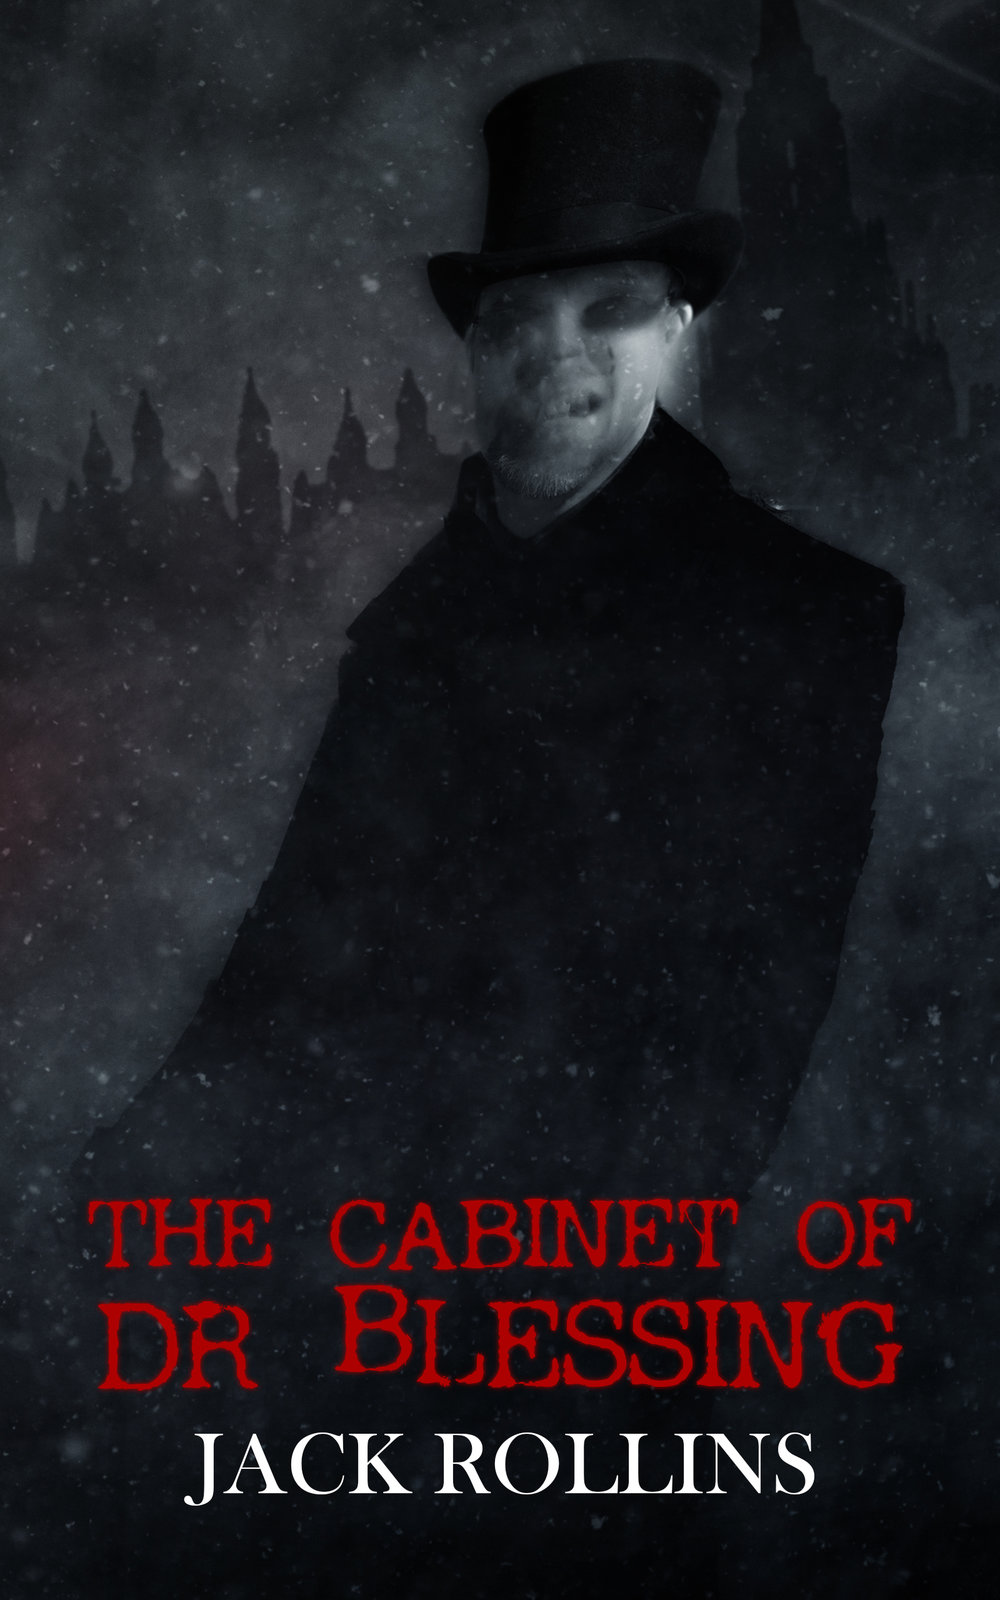 The Cabinet of Dr Blessing, by Jack Rollins. Three gothic horror stories connect in an electrifying, authentic Victorian creep-fest.